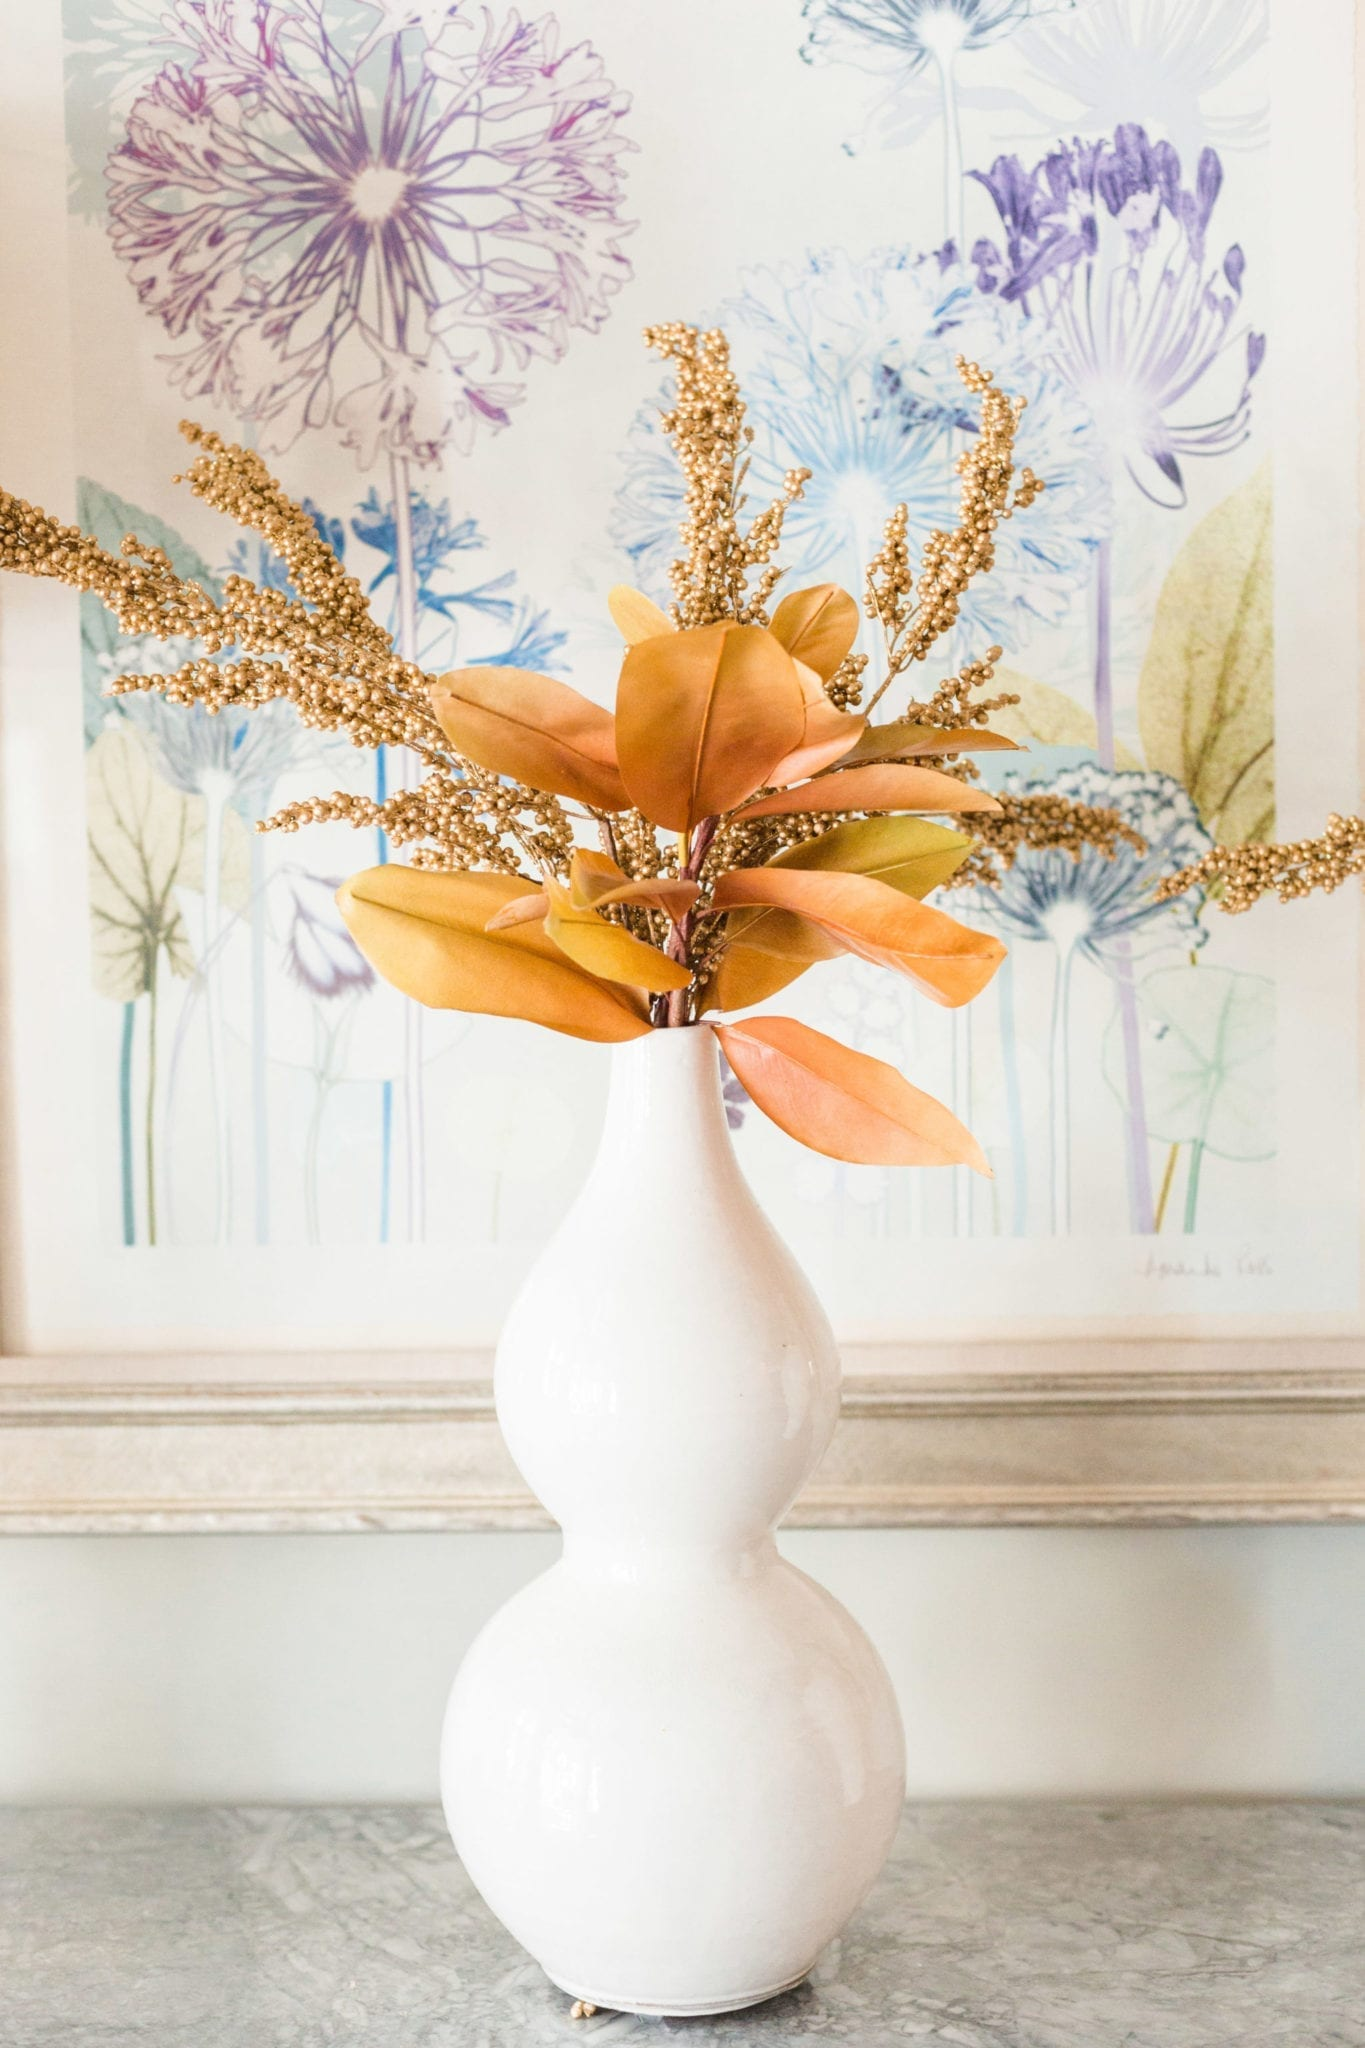 Fake Fall Flowers for autumn decorations around the house.